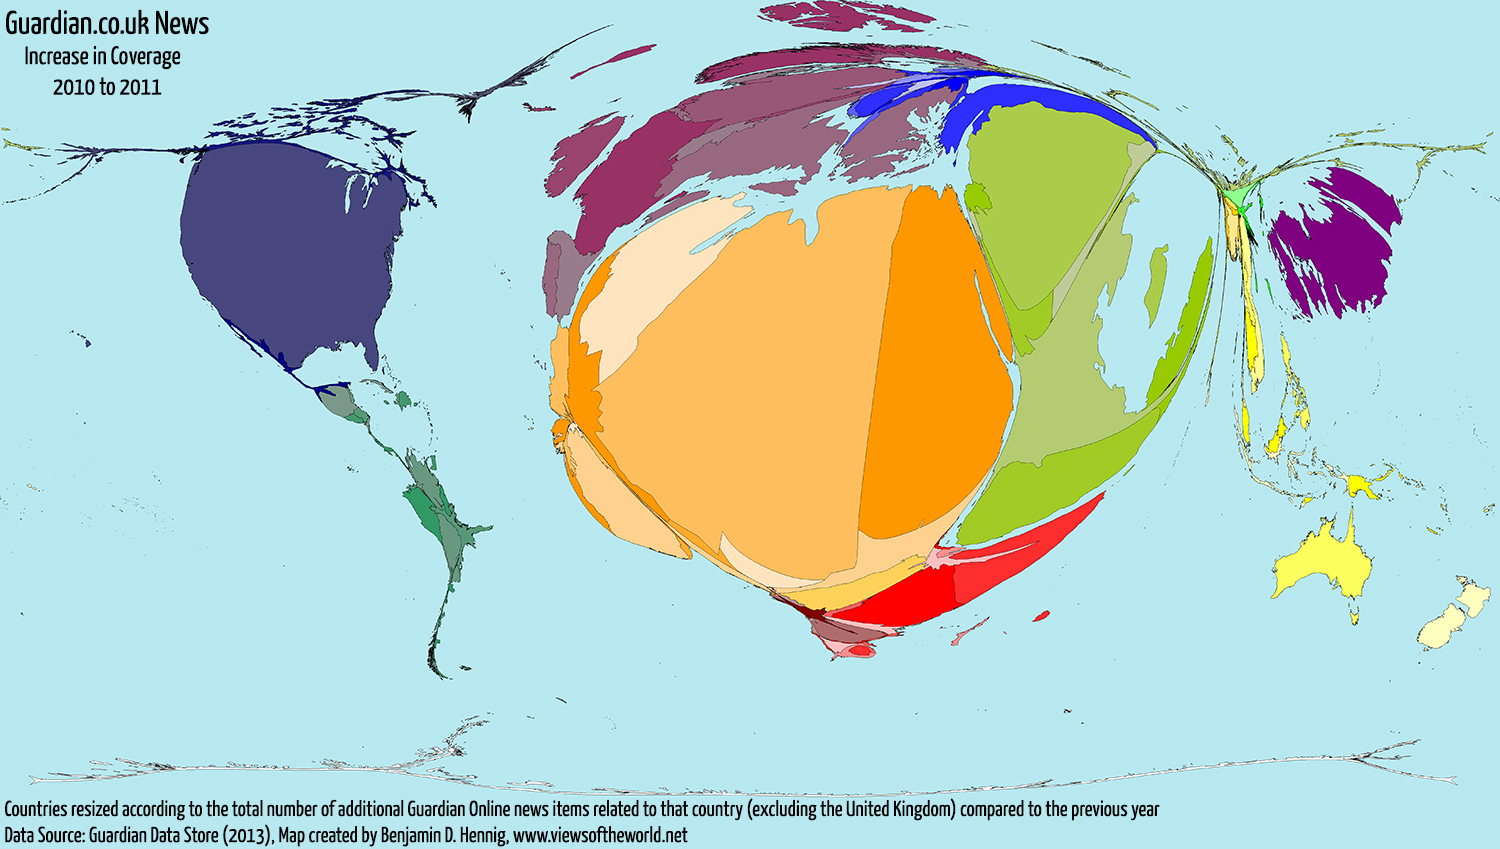 Map / Cartogram of Global Guardian Online News Coverage Increase from 2010 to 2011